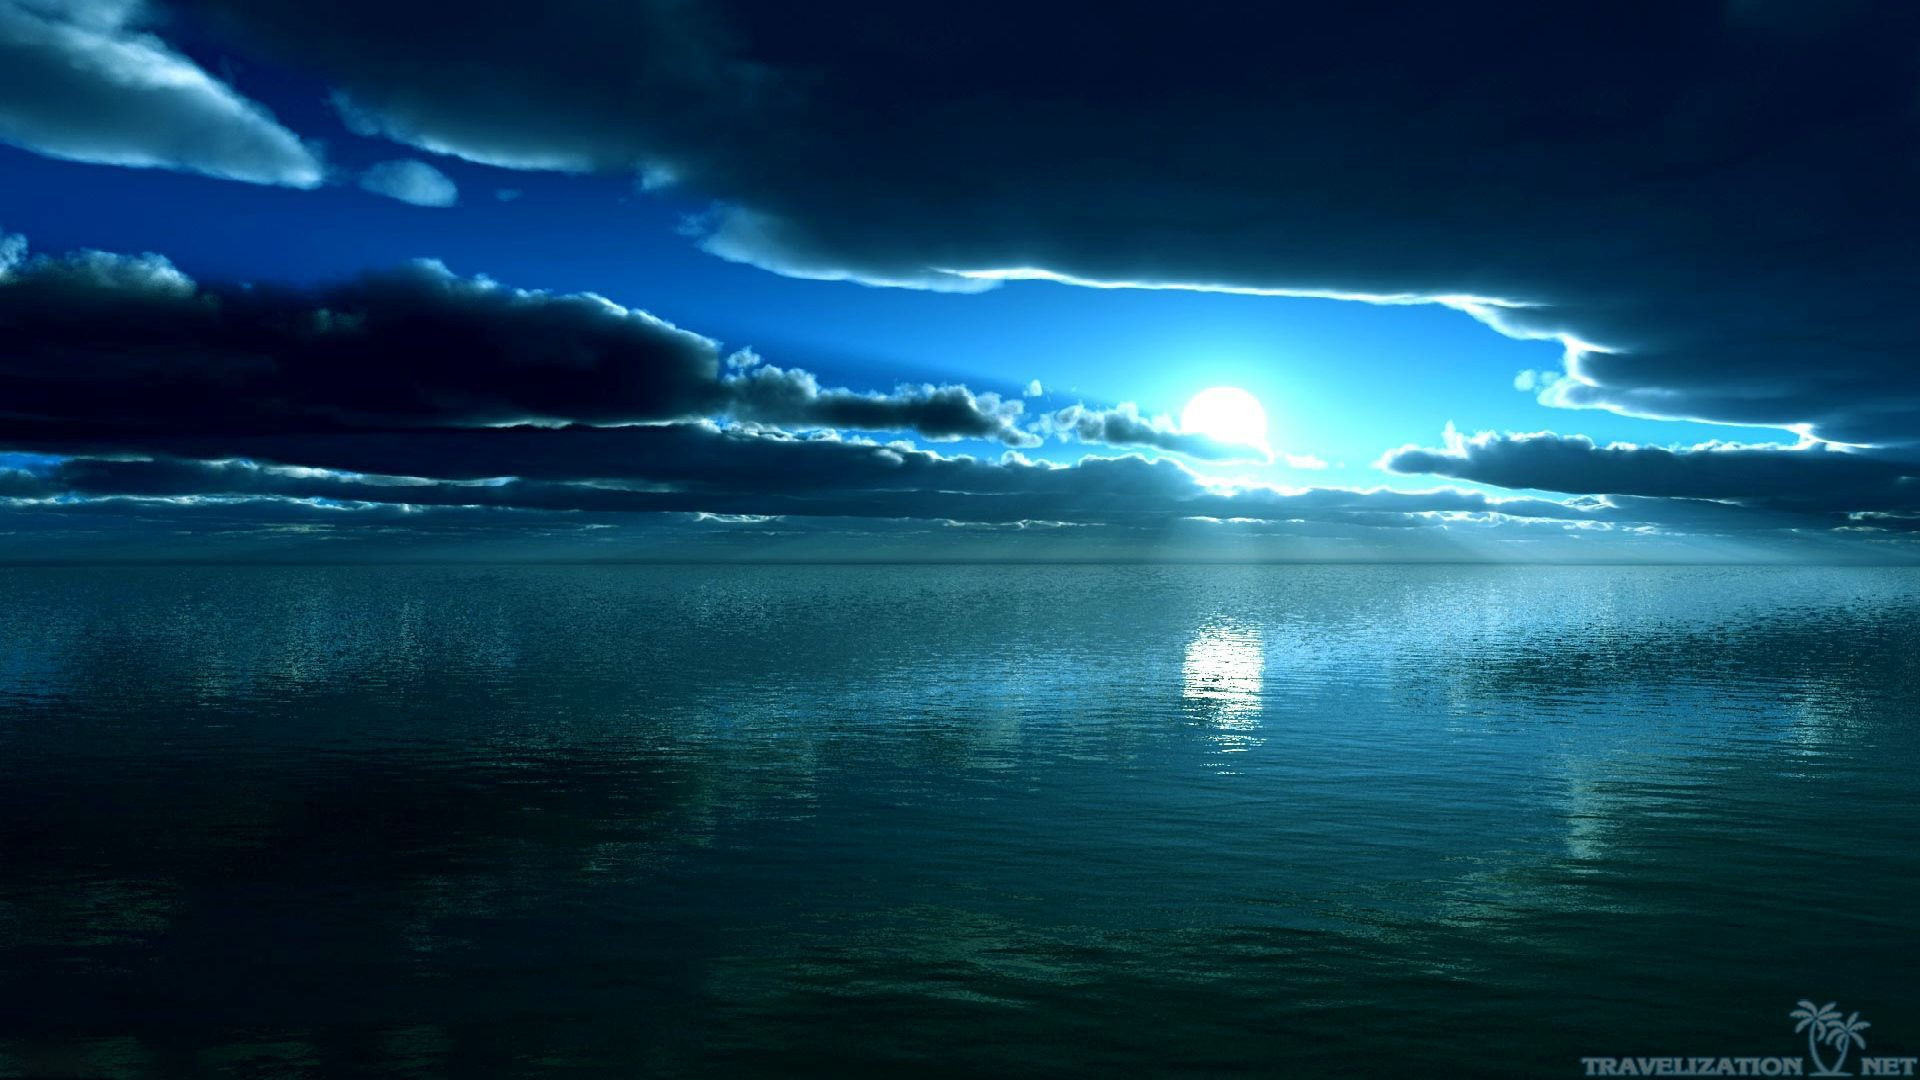 Peaceful And Wonderful Sky Wallpapers   Travelization 474